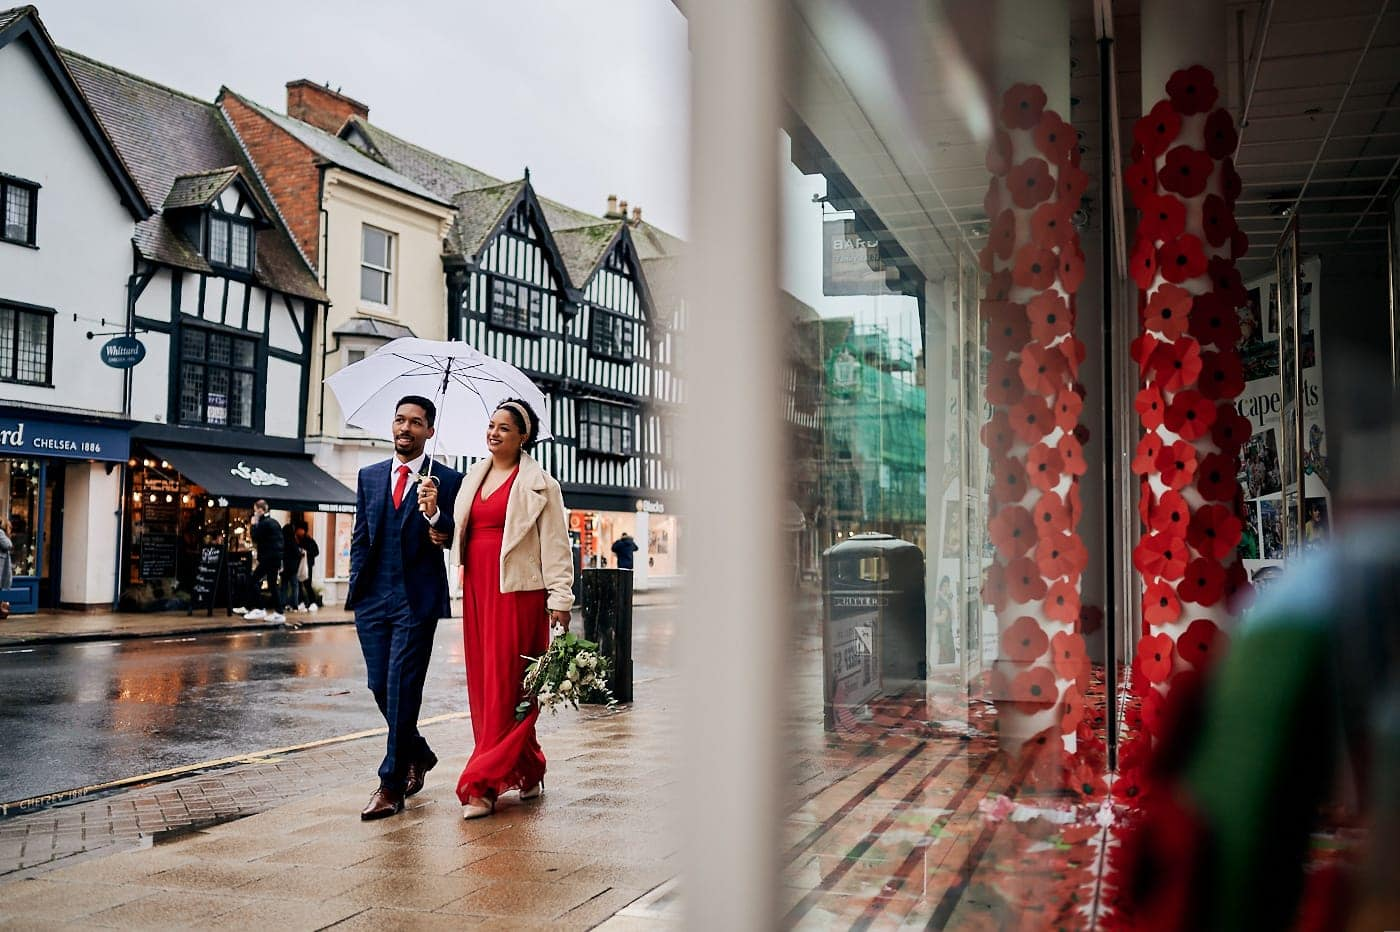 Bride and groom walk through streets of Stratford-upon-Avon